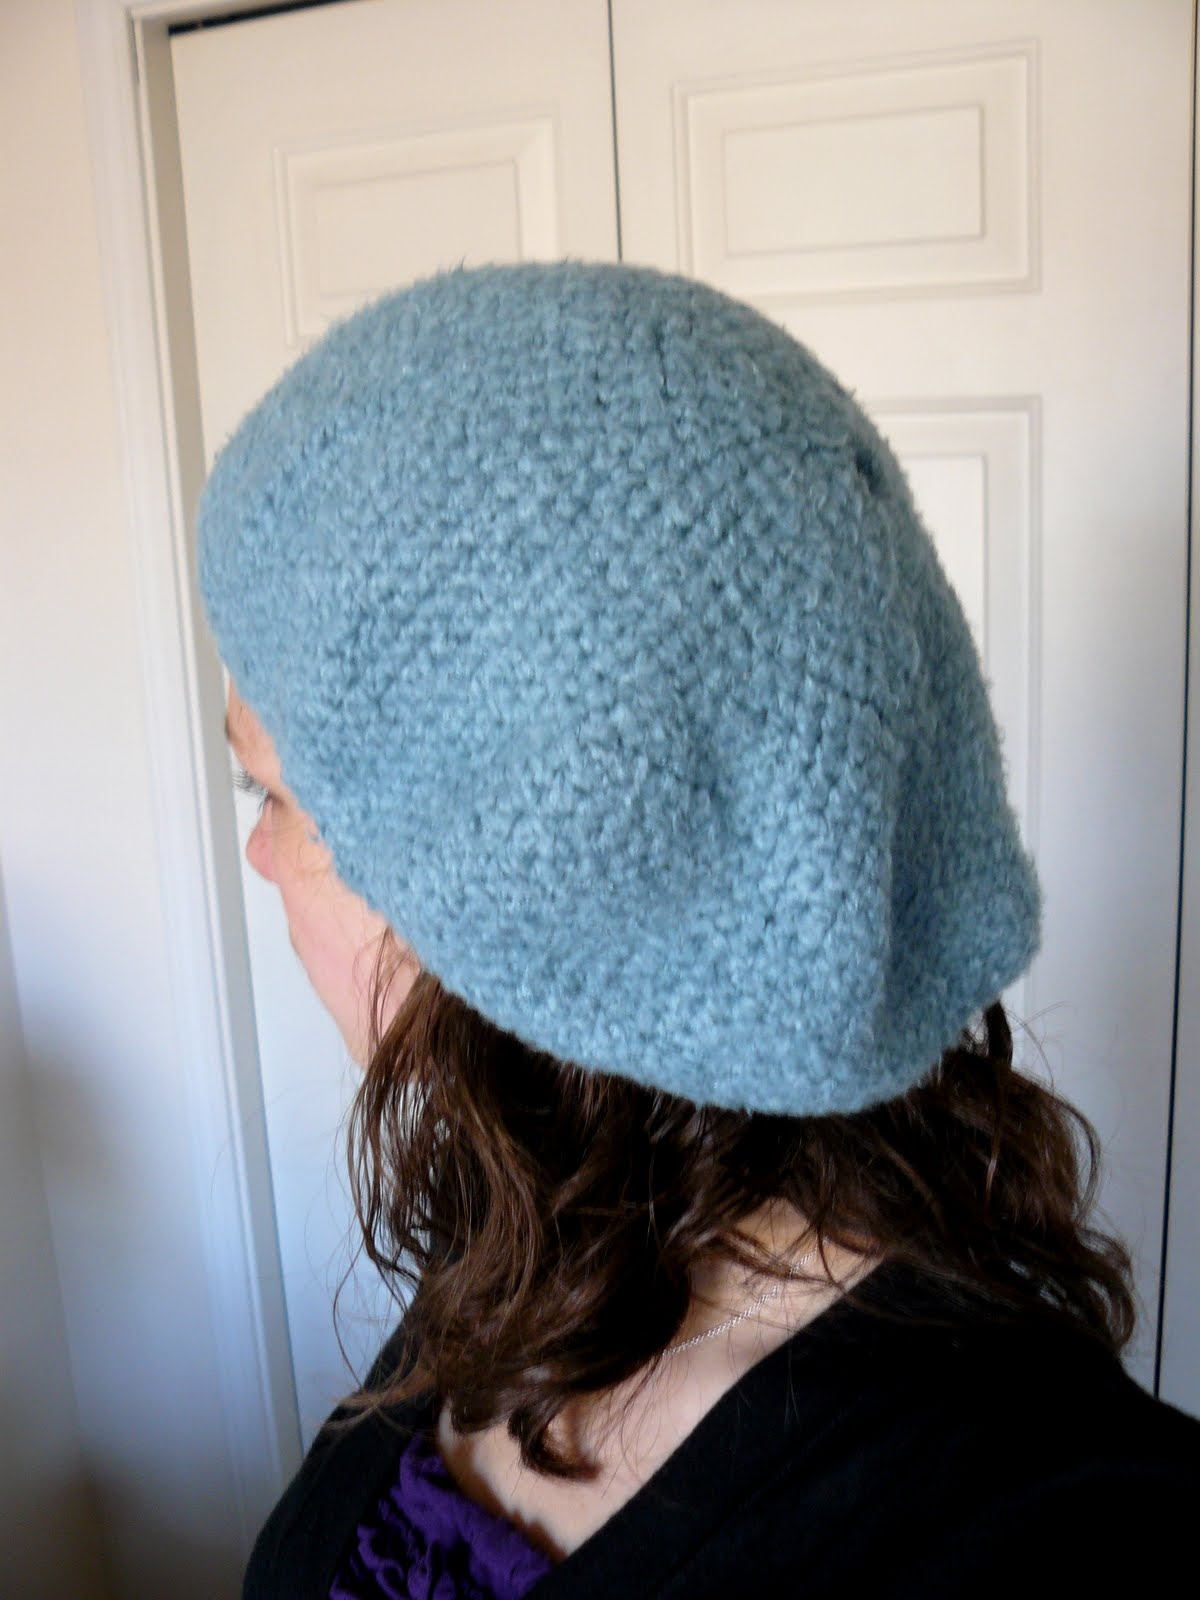 simple crochet projects Simple crochet [erika knight] on amazoncom free shipping on qualifying offers simple crochet brings a modern twist to a traditional craft using a stunning.